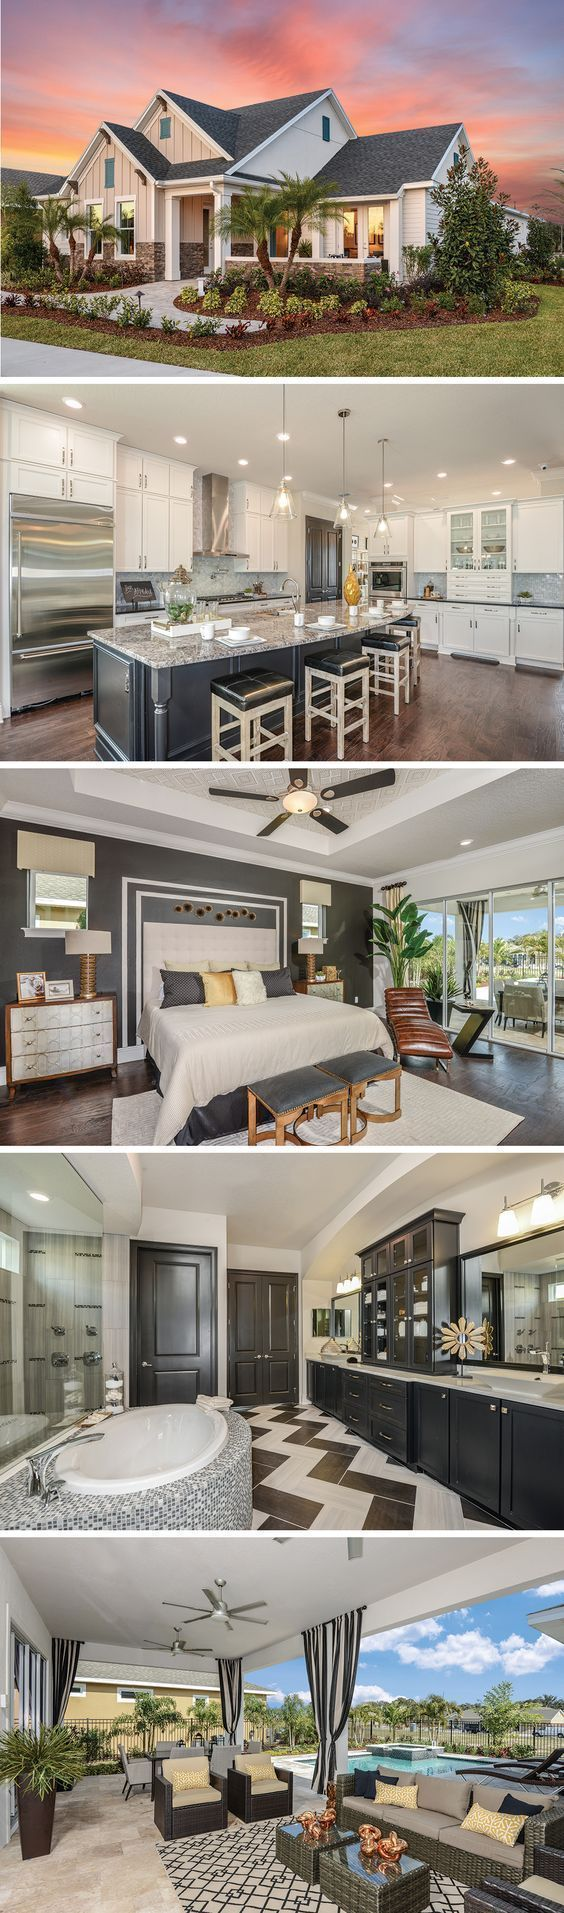 The Edencrest by David Weekley Homes in Encore is a 2 bedroom, 2 bath floorplan that features an open kitchen and family room layout, a large owners retreat with tray ceilings and a private lanai. Custom home upgrades include an extended lanai, a shower in the master bathroom or a 3 car garage. #HomeAppliancesLayout